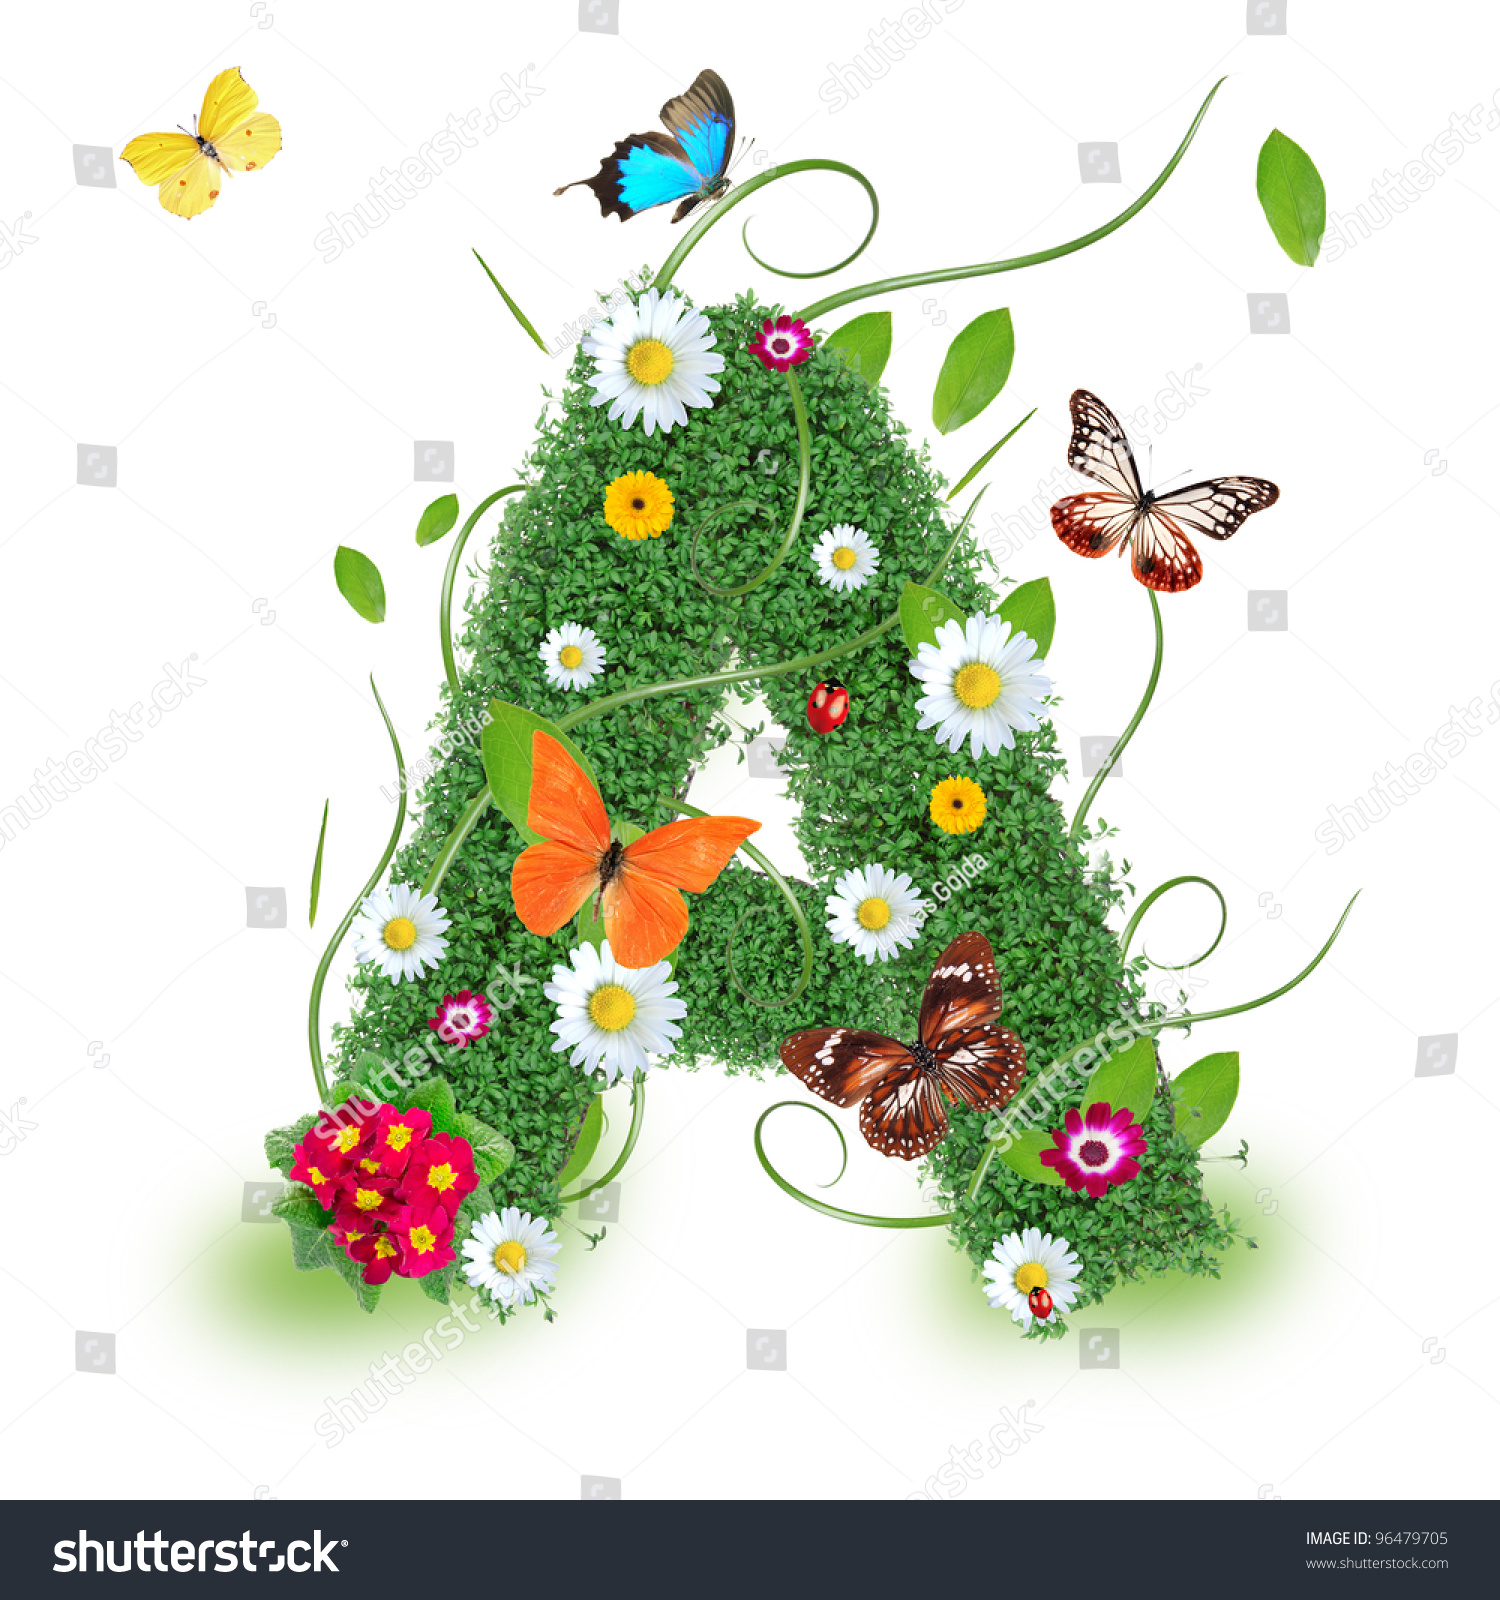 Beautiful Spring Letter A Stock Photo 96479705 - Shutterstock